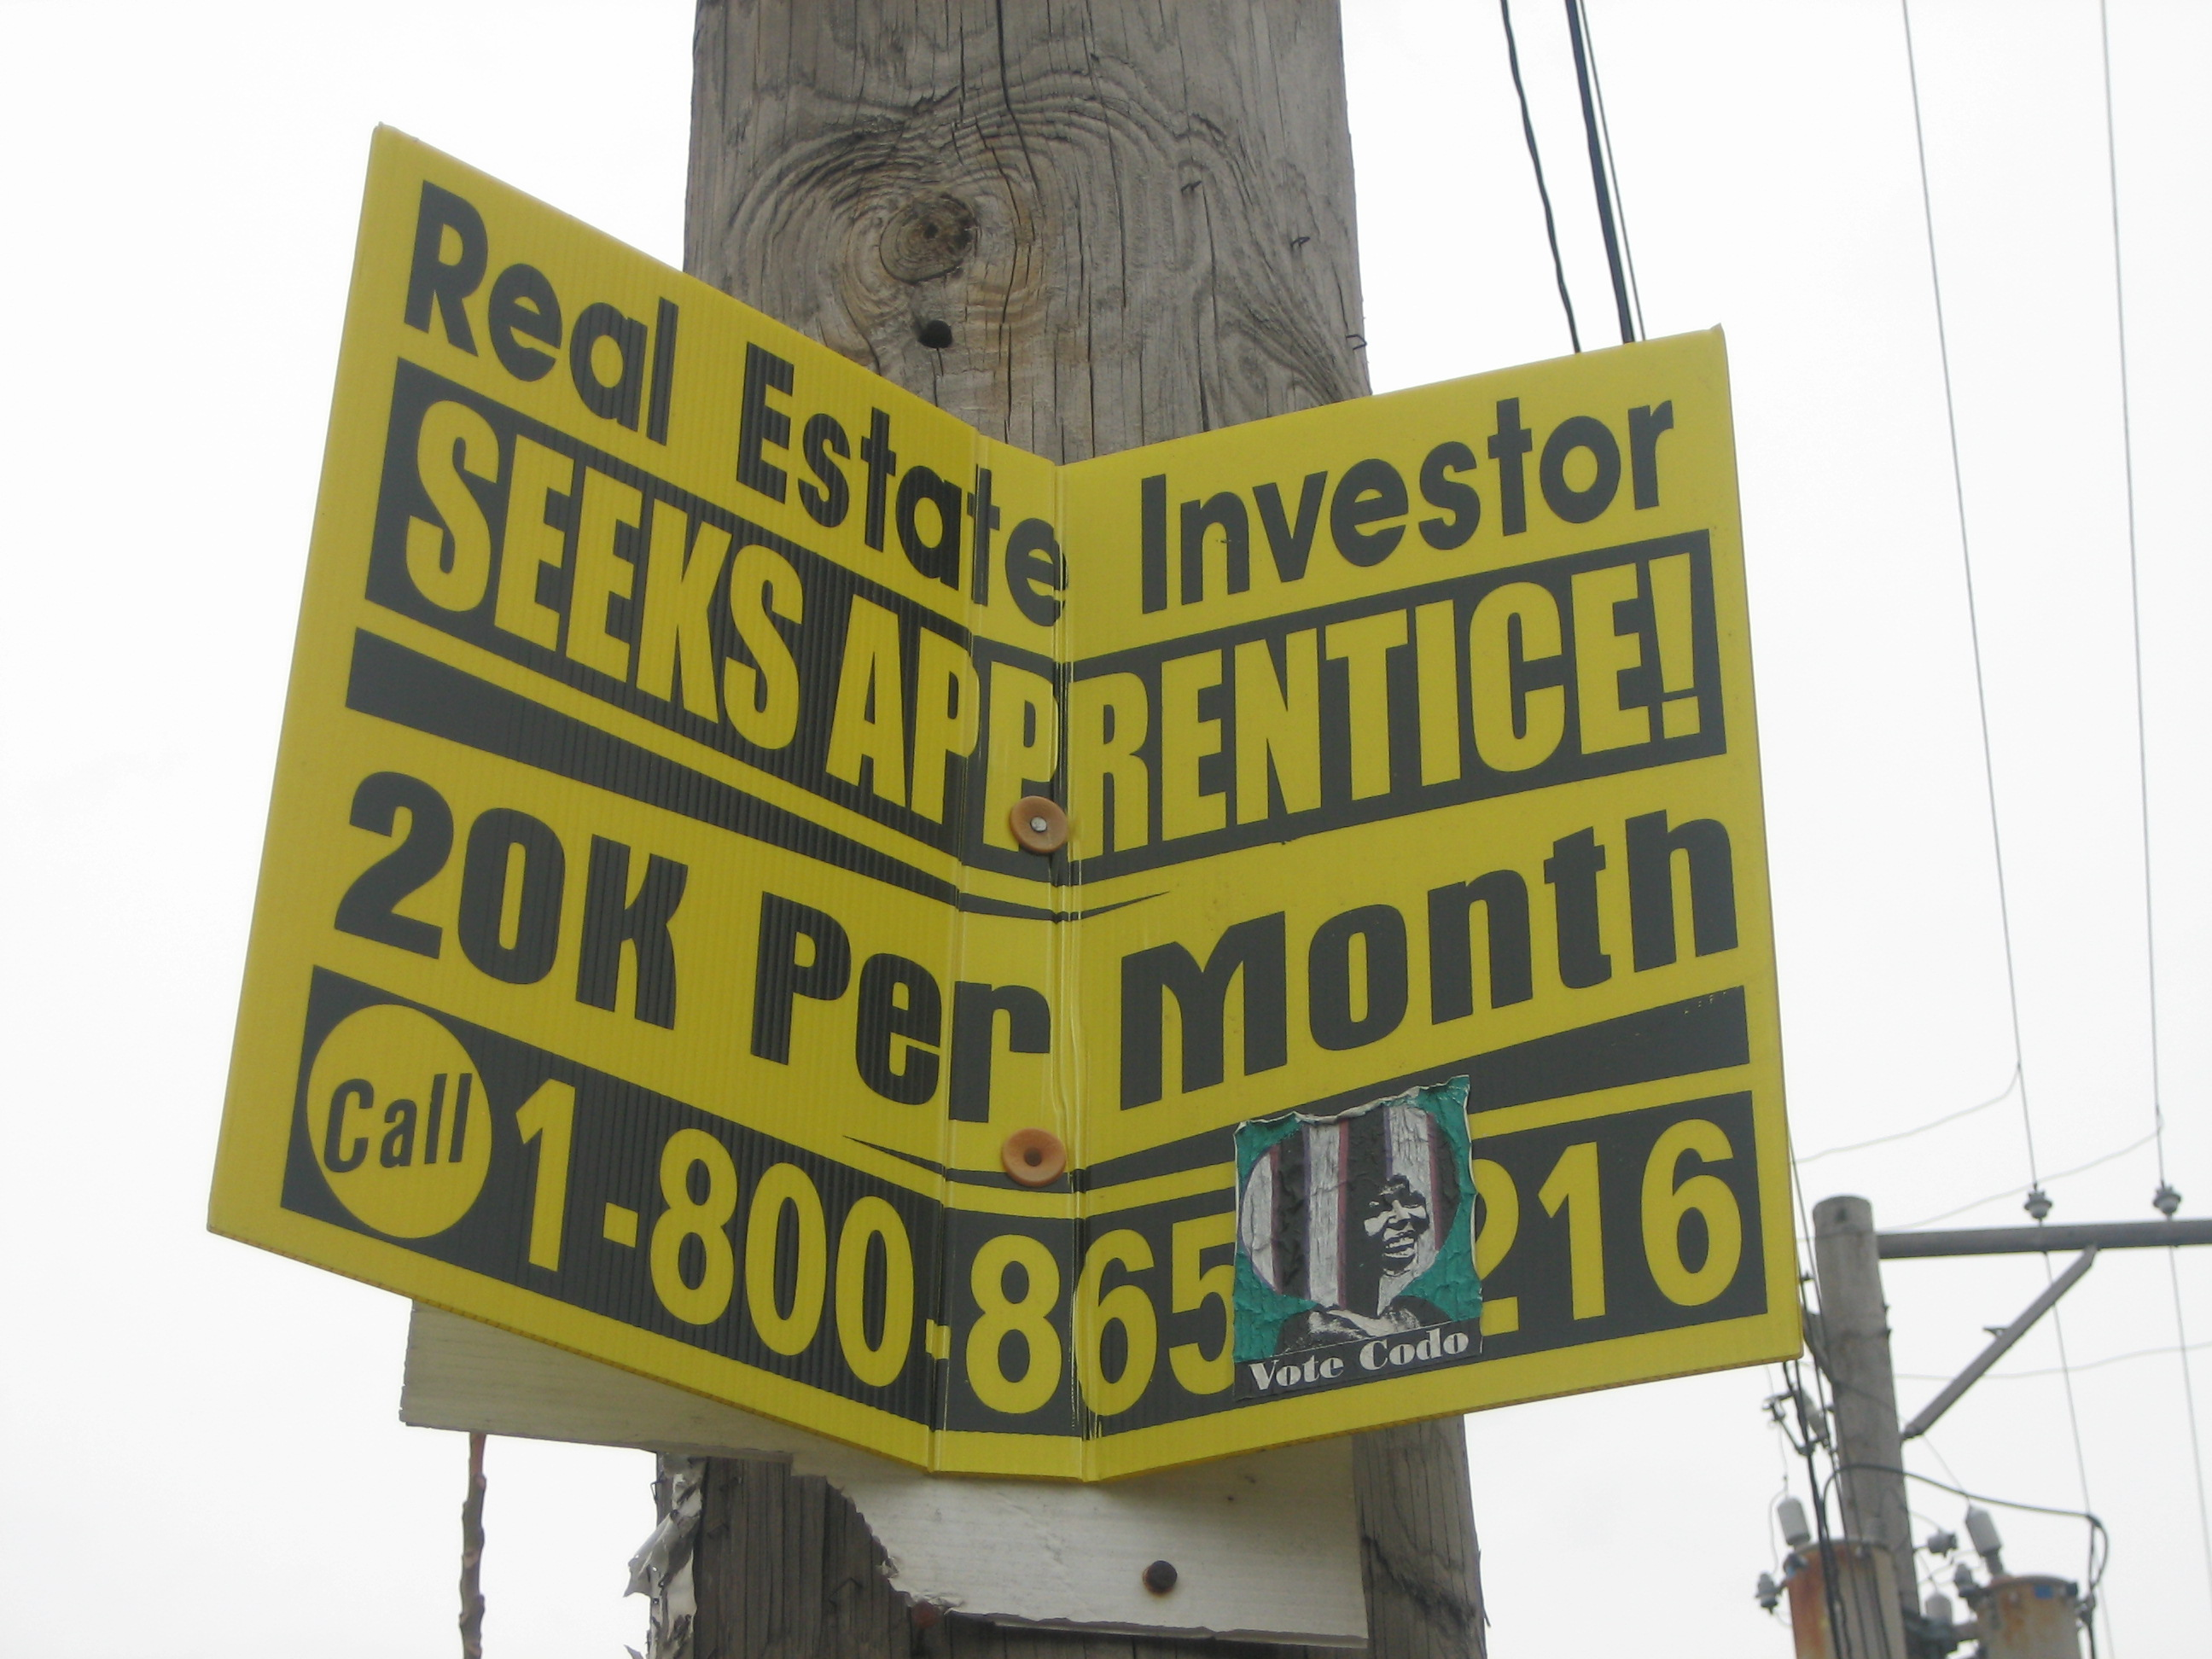 The real deal in Wicker Park – 20k a month for the right real estate apprentice!